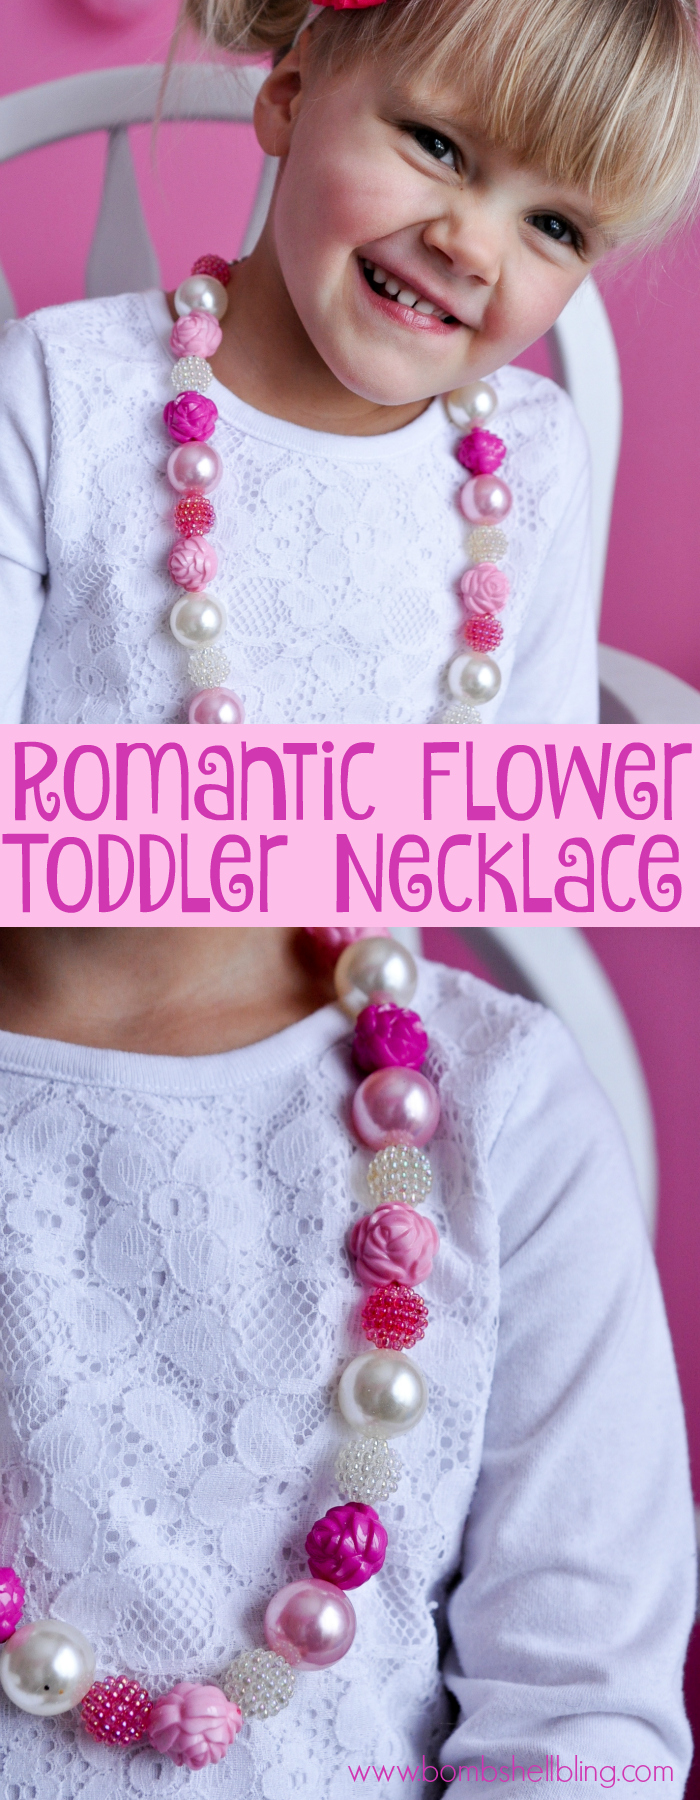 Make a romantic flower toddler necklace with this simple tutorial. Toddler jewelry is simple to make and affordable with these diy tutorials!